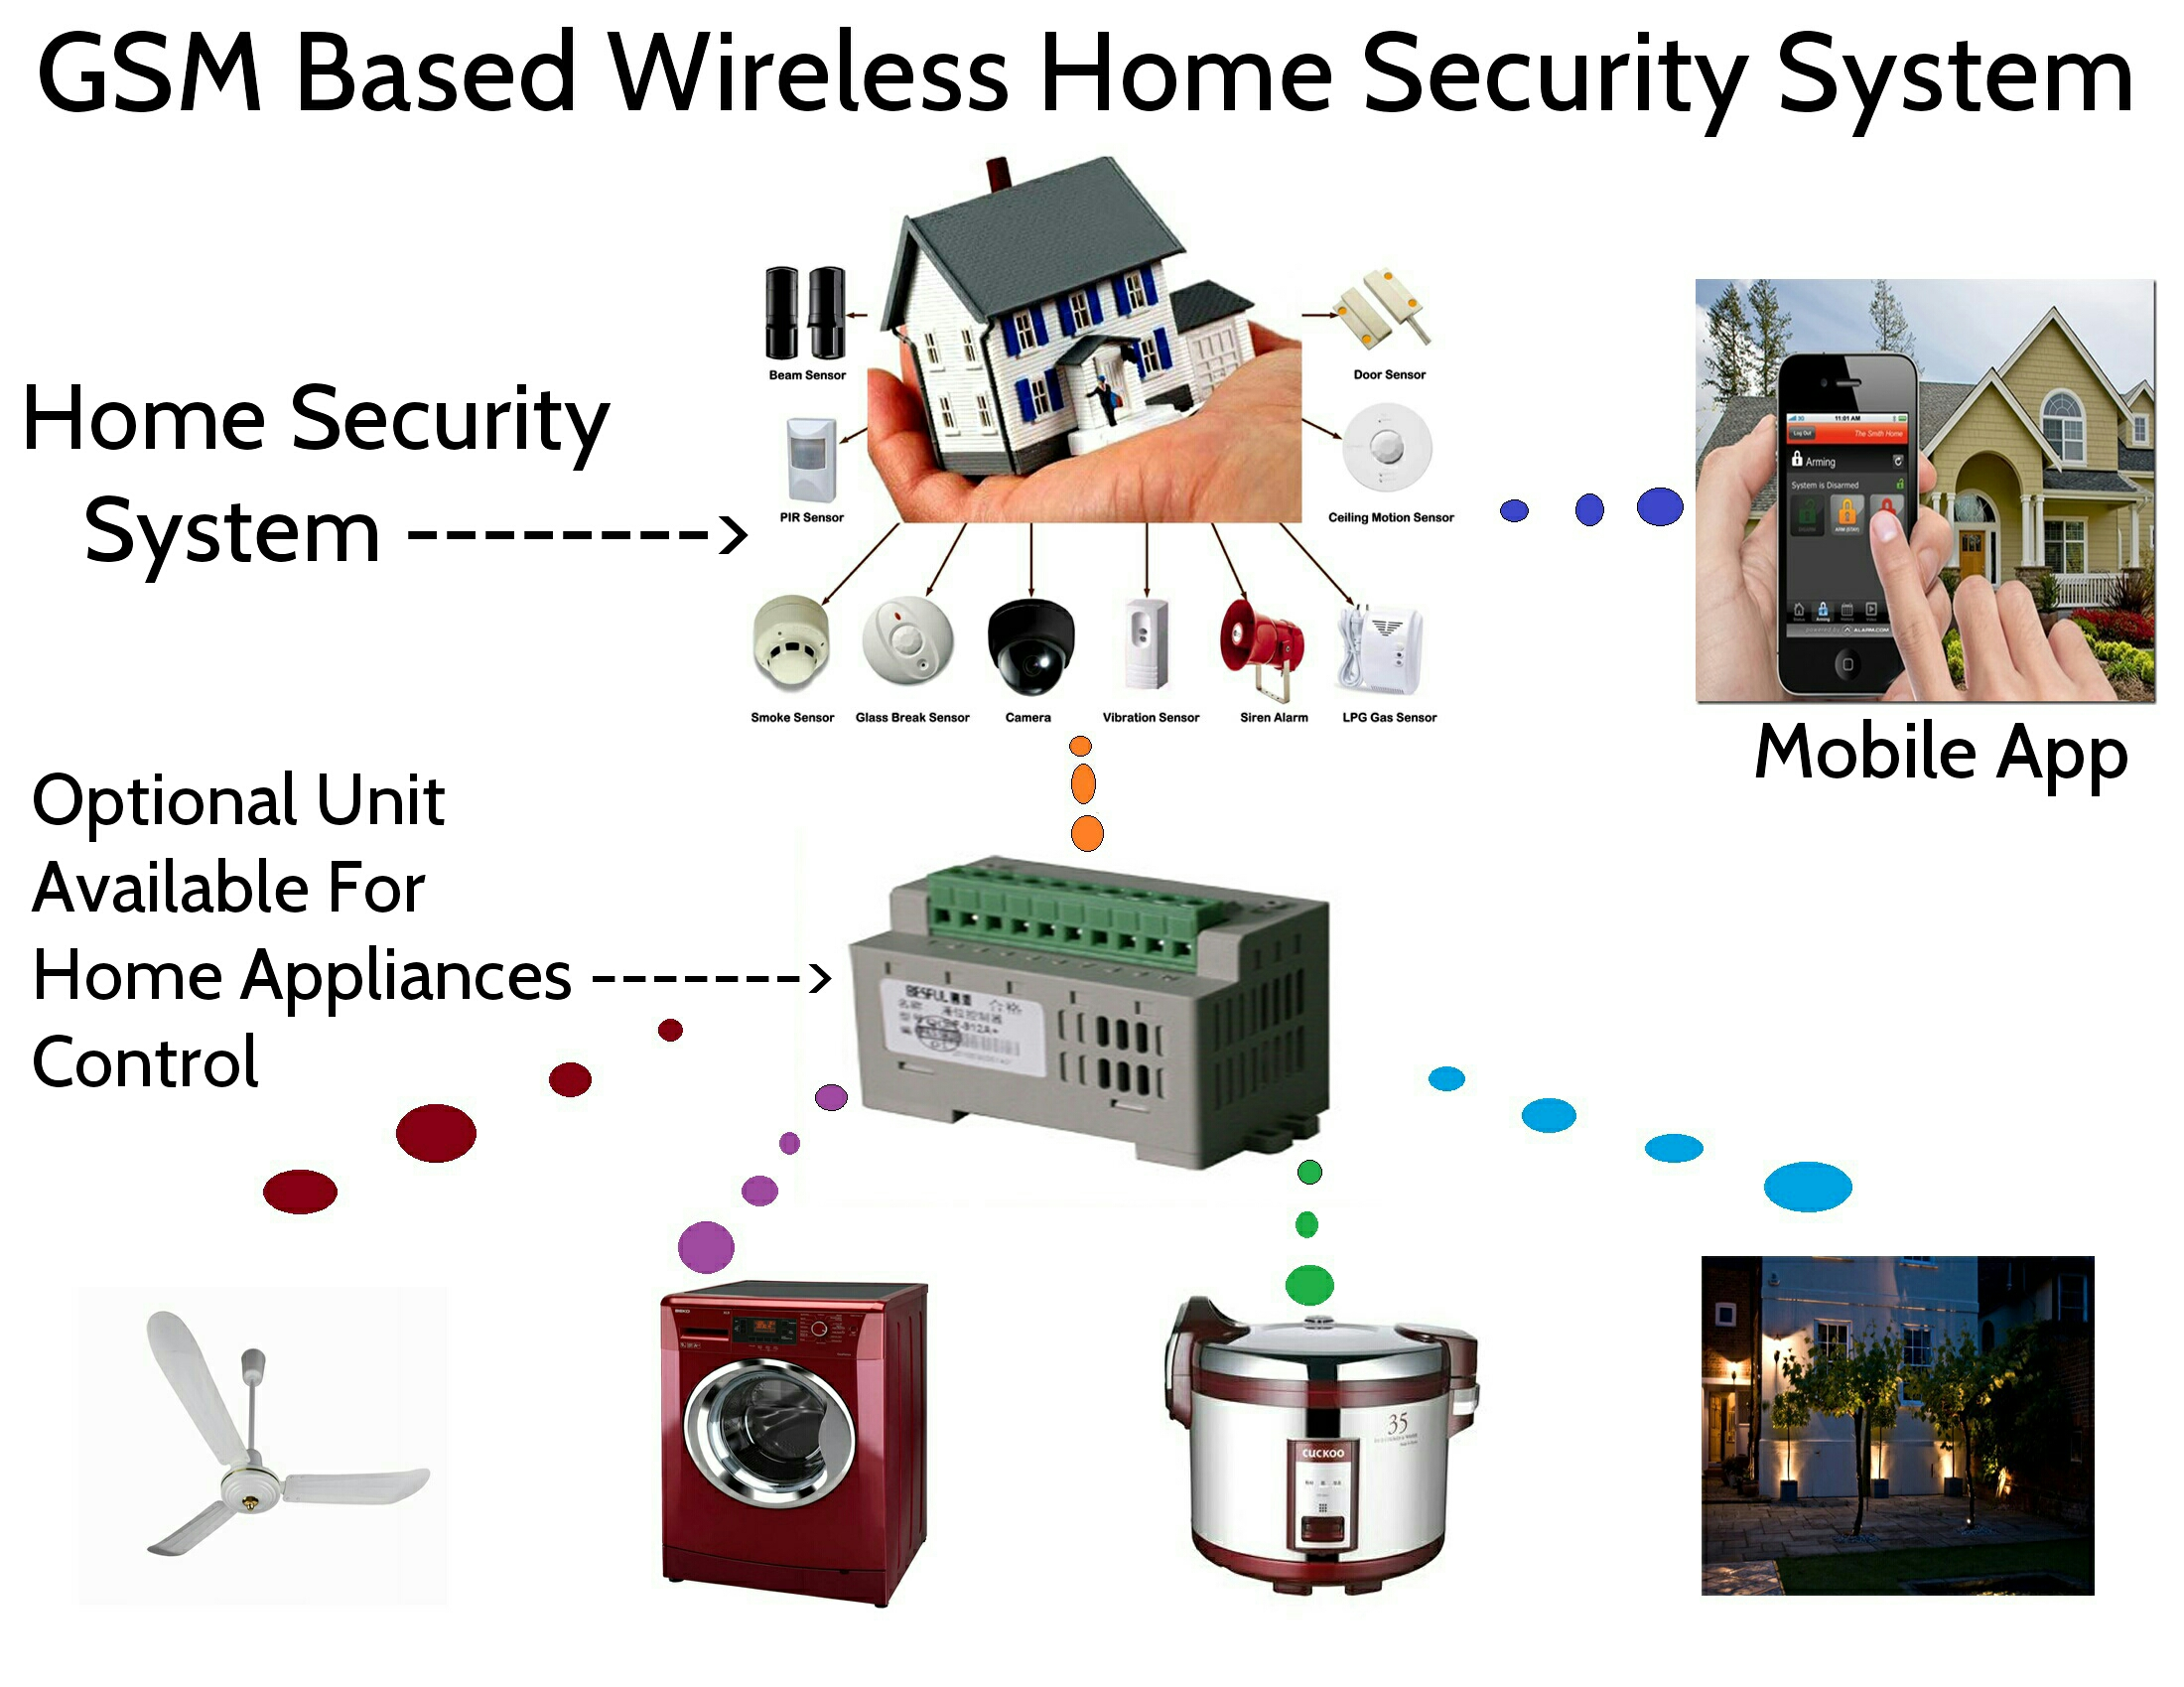 Design and implementation of modular home security system